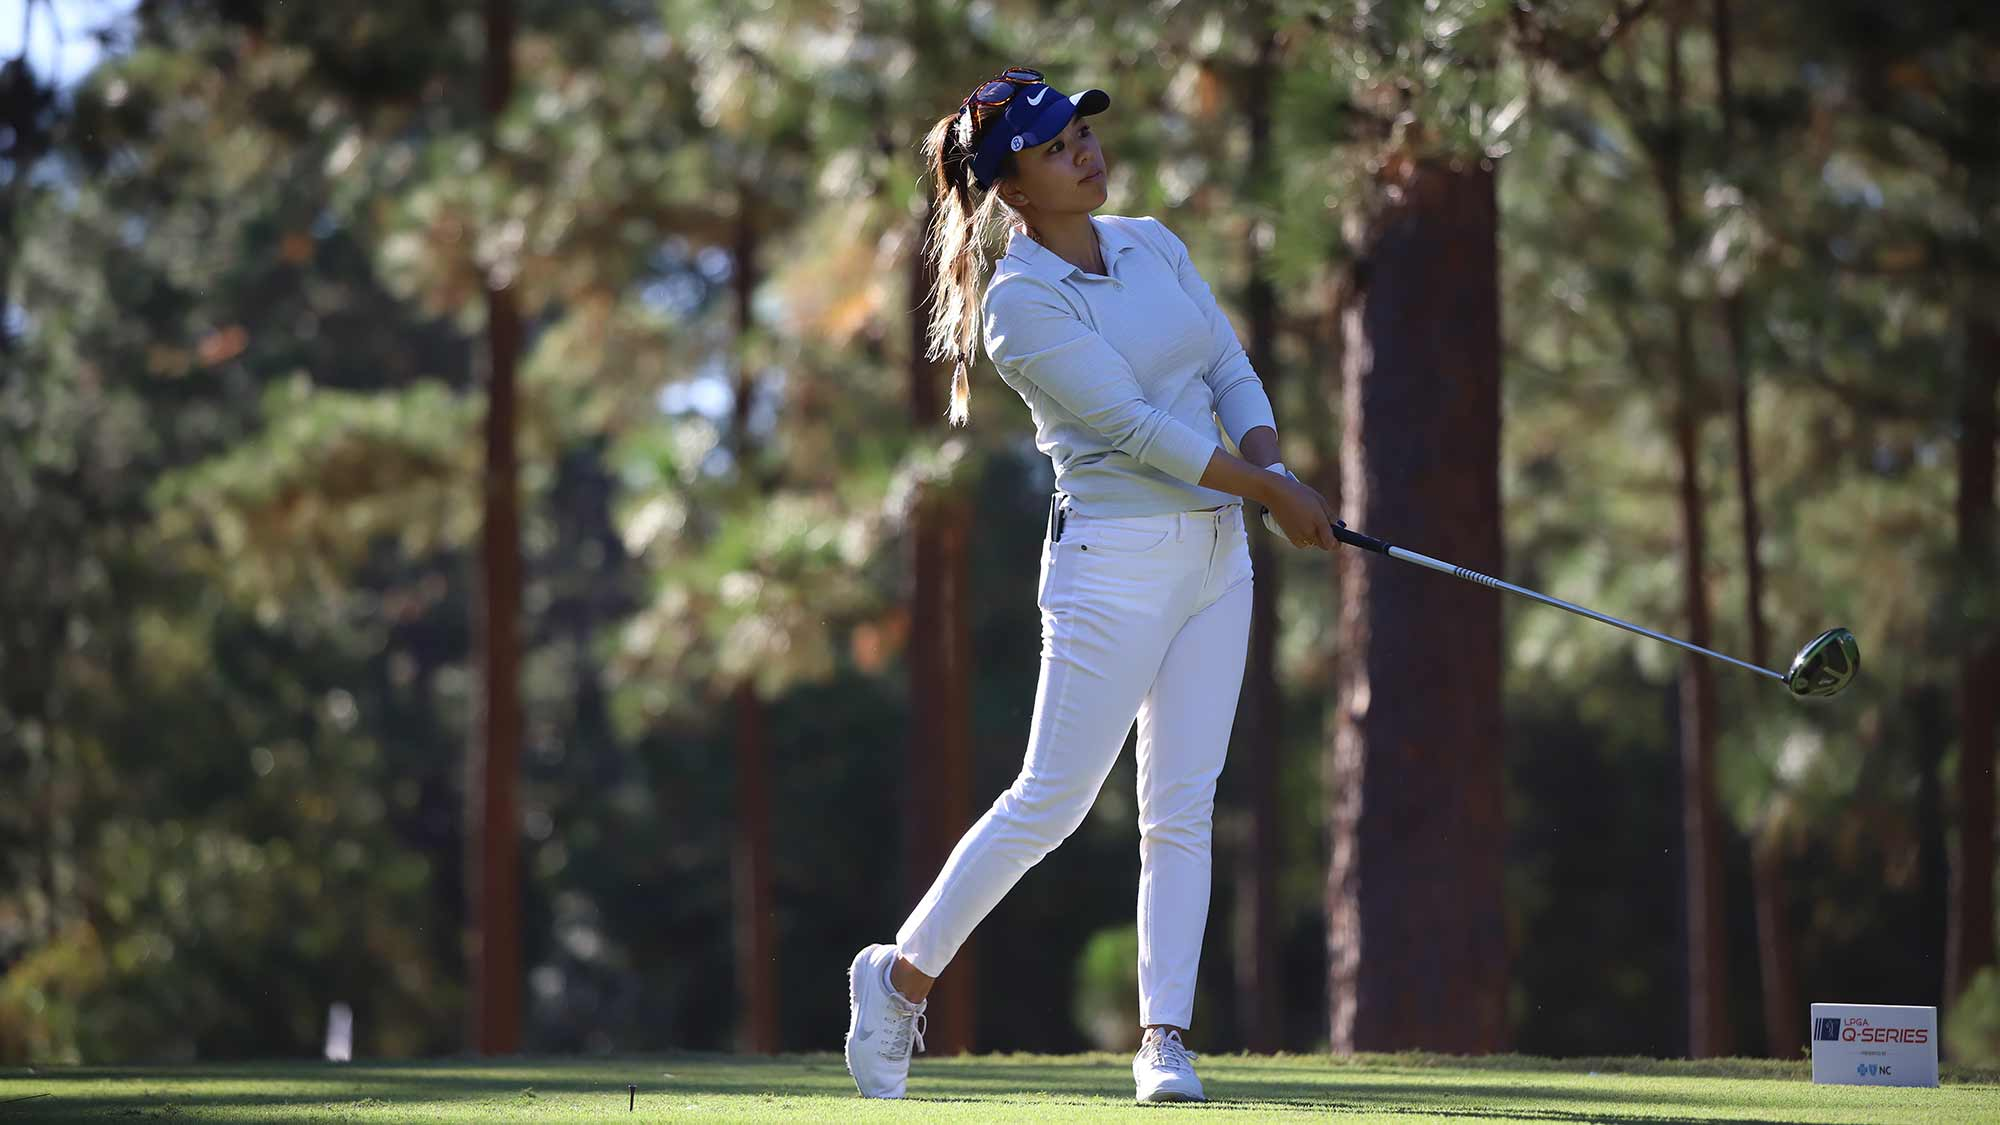 Brianna Do hits a tee shot during the first round of the 2019 LPGA Q-Series at Pinehurst Resort